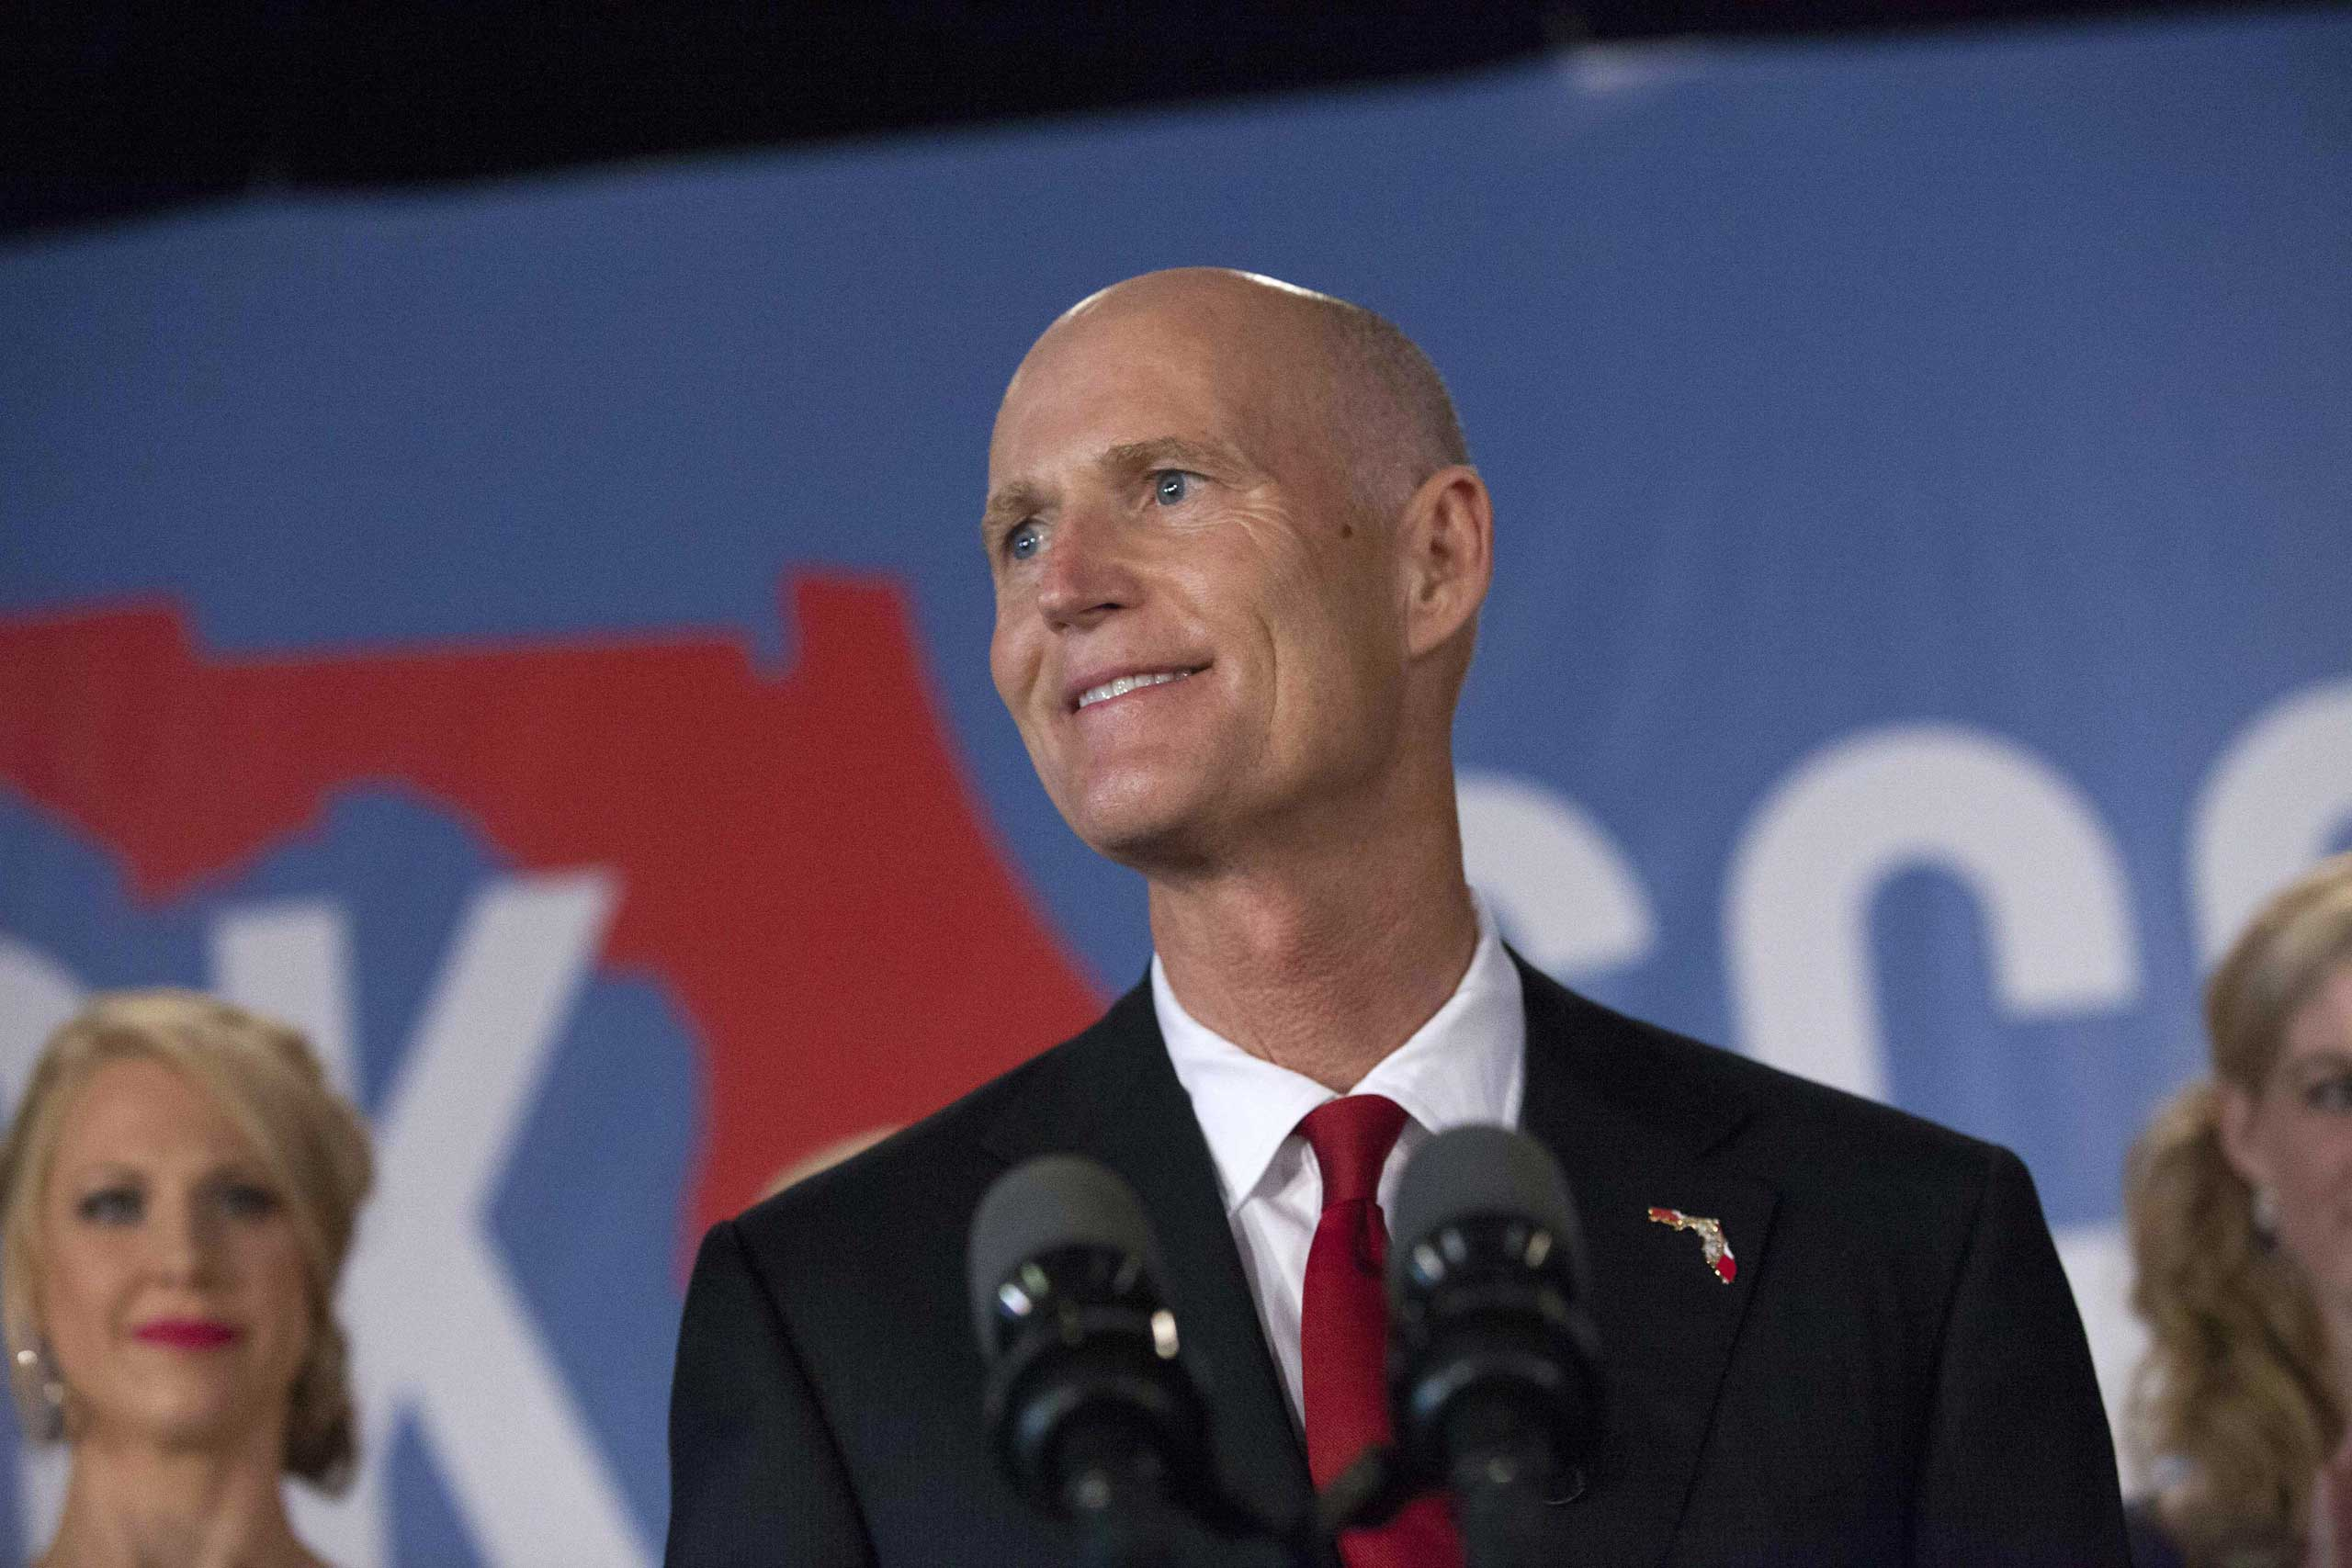 Florida Rep. Gov. Rick Scott gives his victory speech Nov. 4, 2014 in Bonita Springs, Florida.